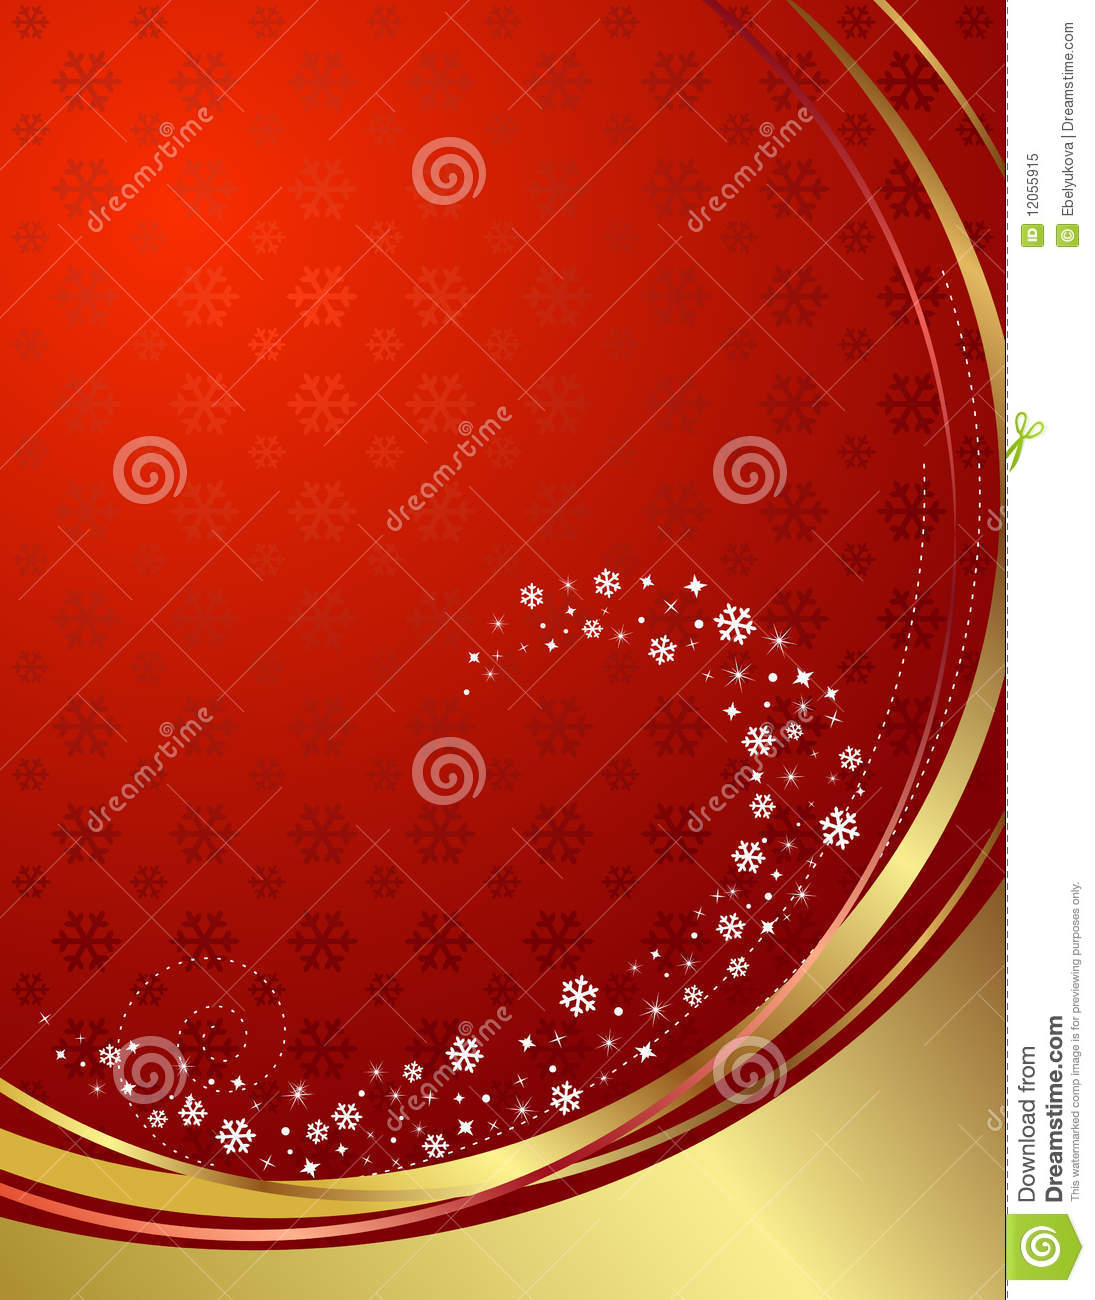 Red and gold background with snowflakes royalty free for Red with gold